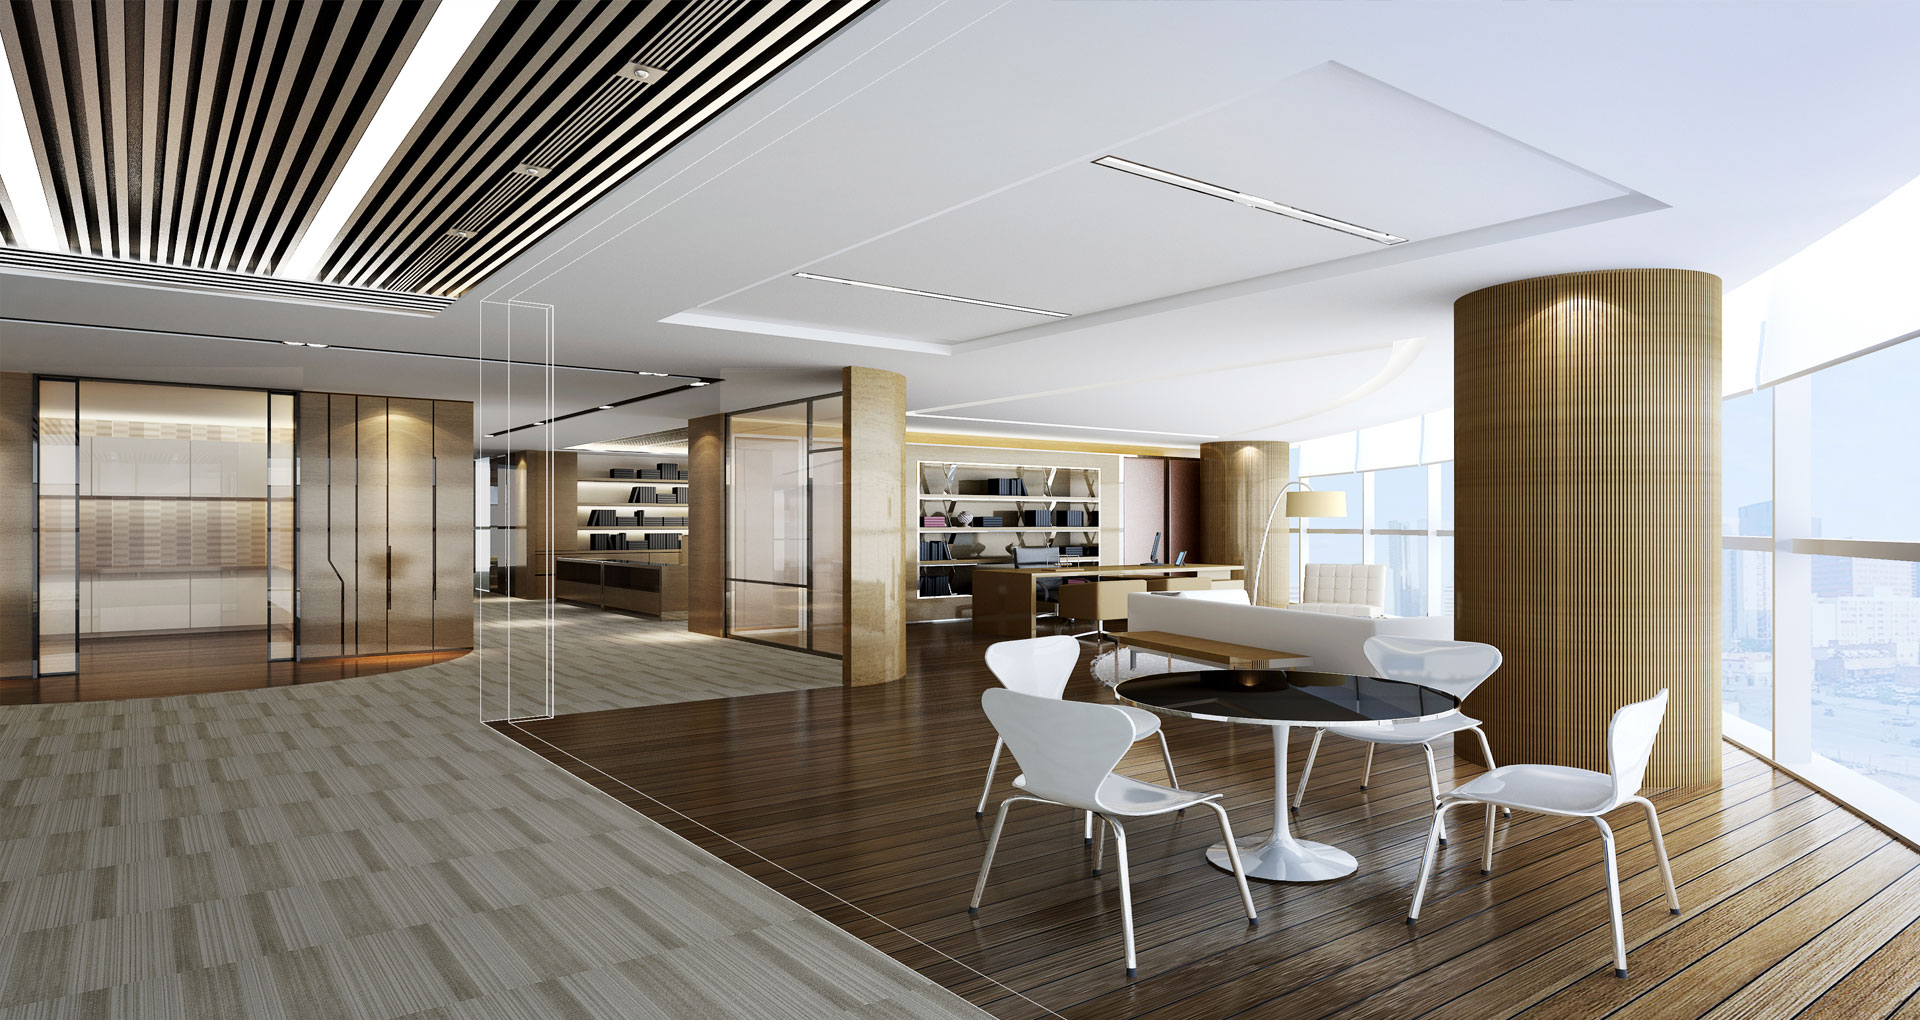 Office interior design inpro concepts design for Office interior design